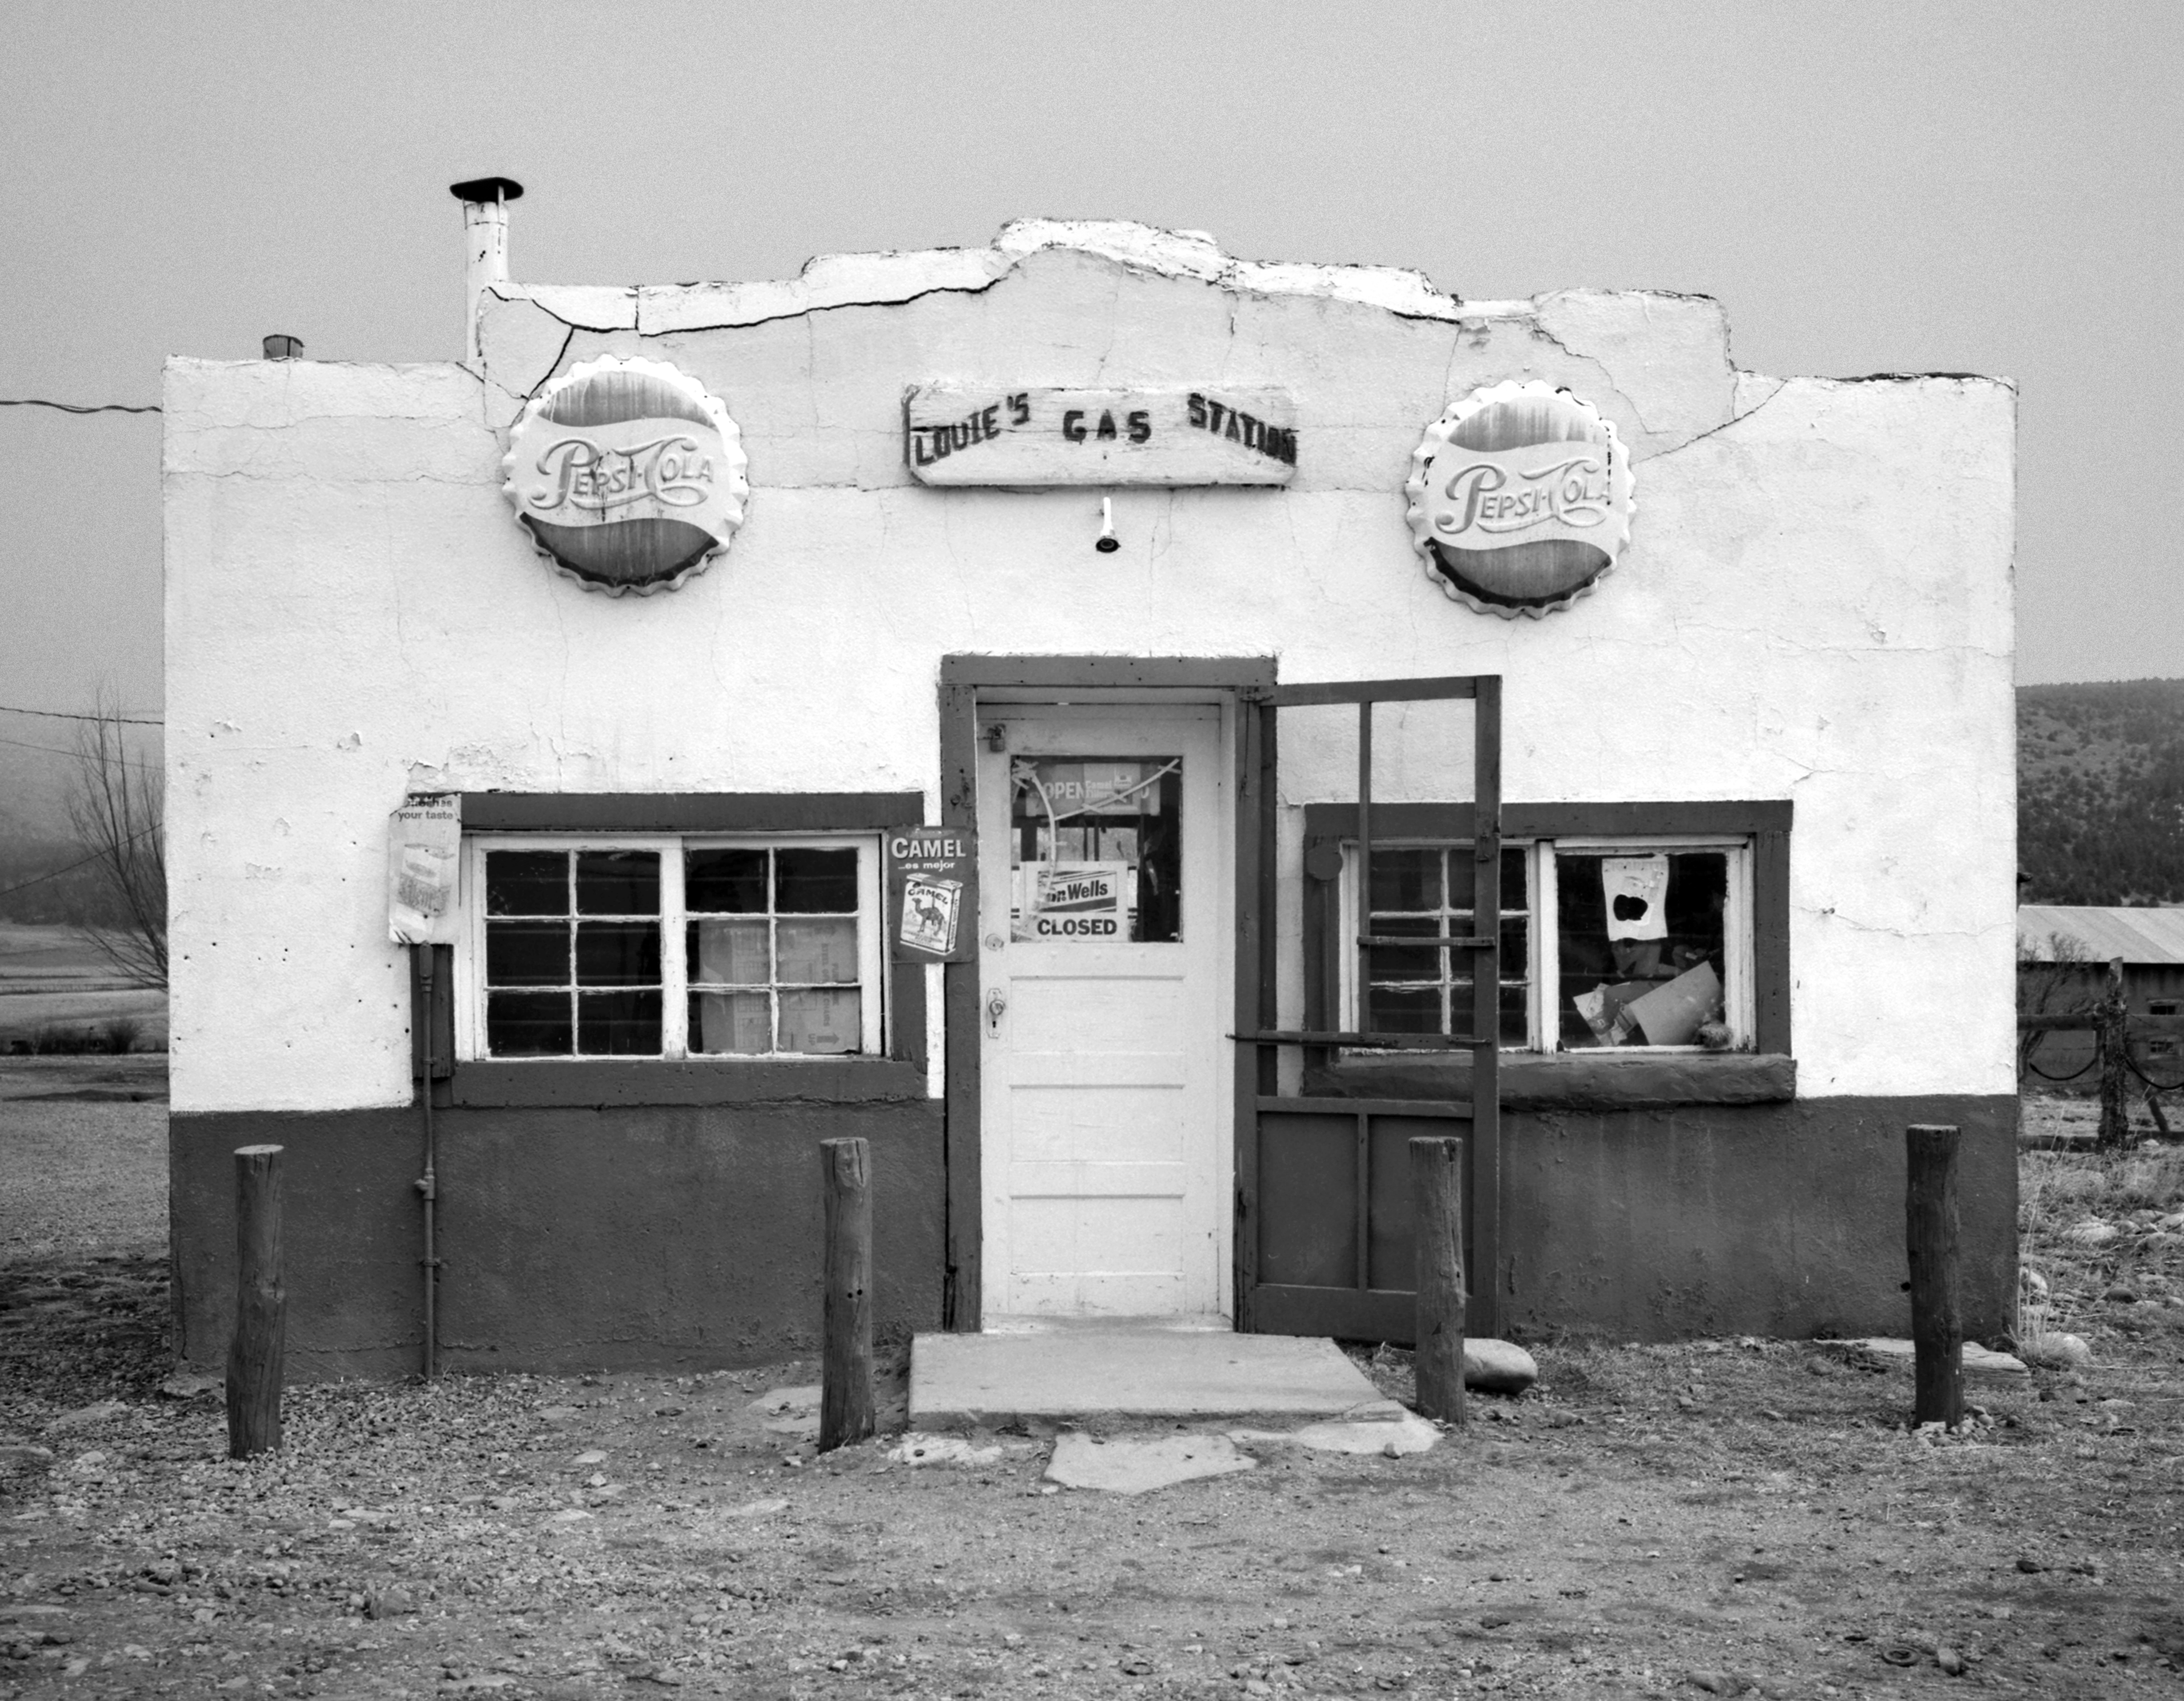 Louie's, Cleveland, New Mexico, 1977